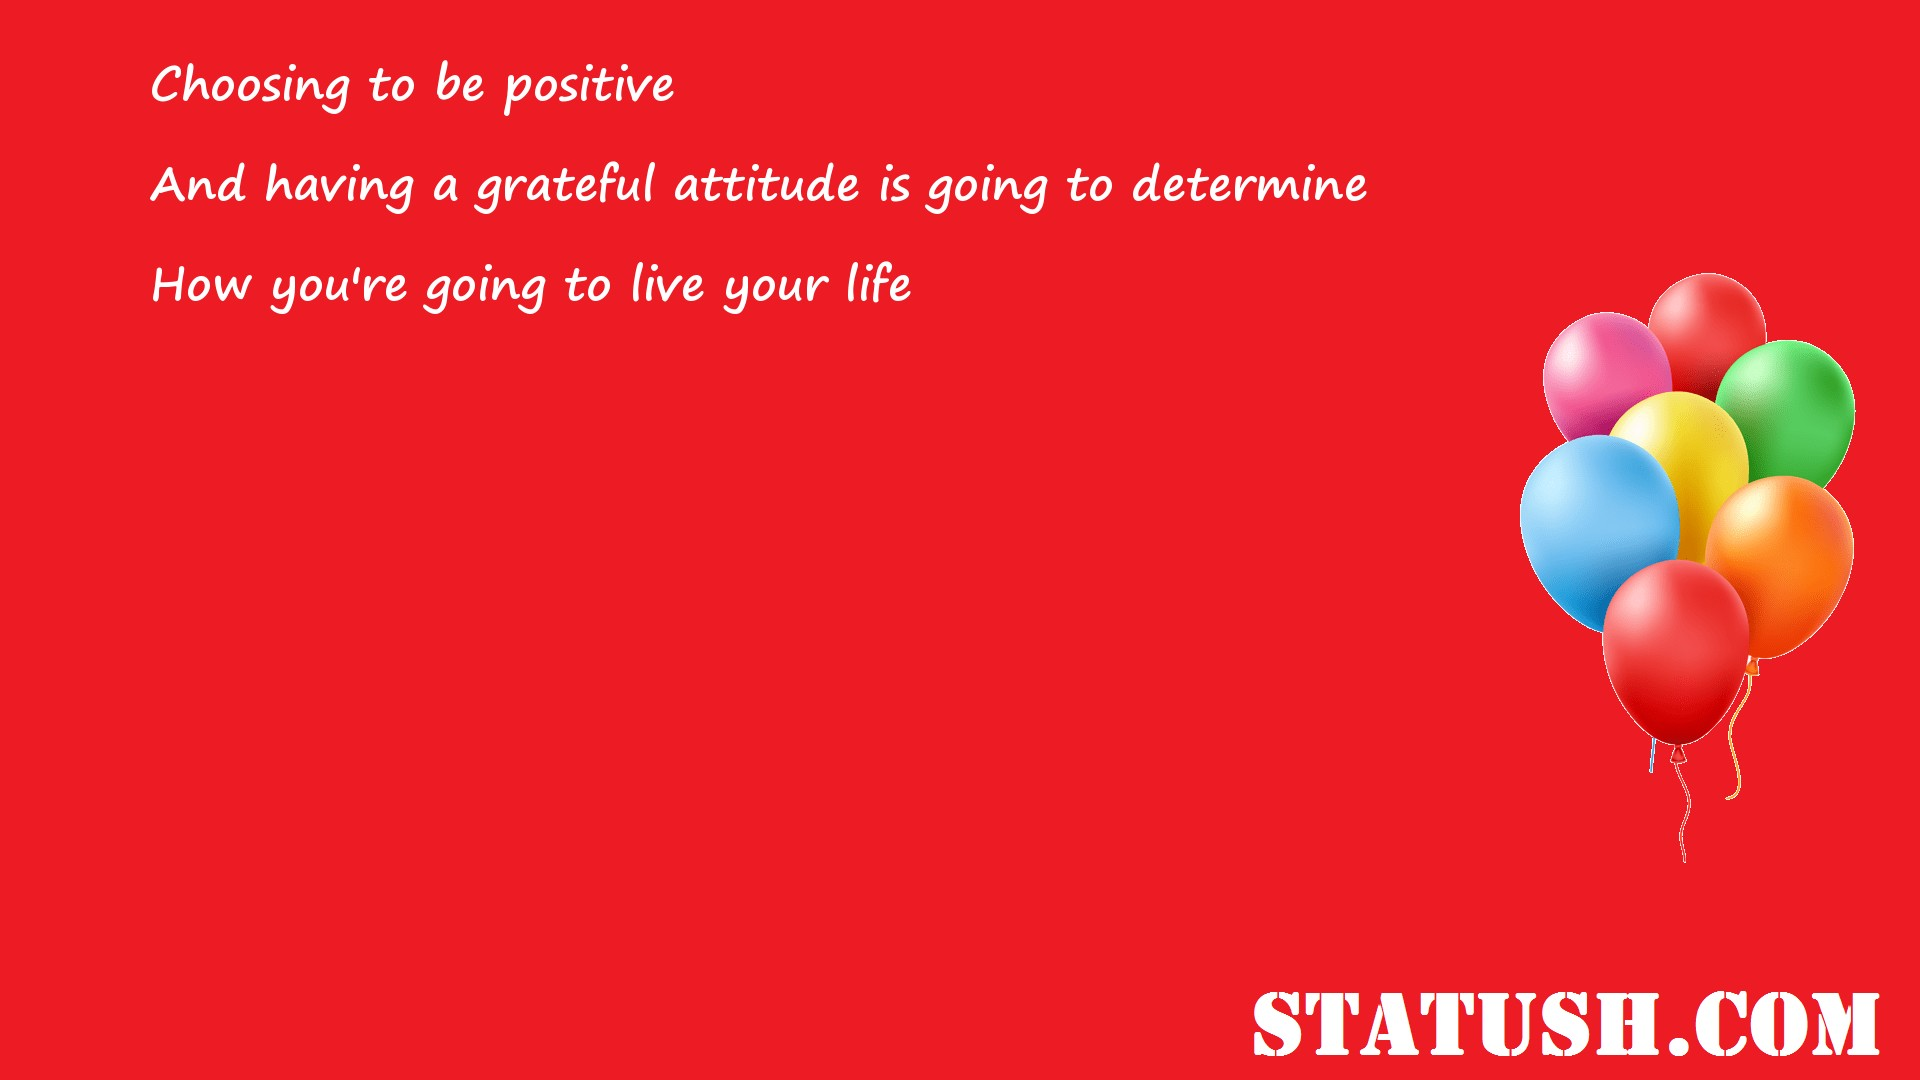 Choosing to be positive and having a grateful attitude